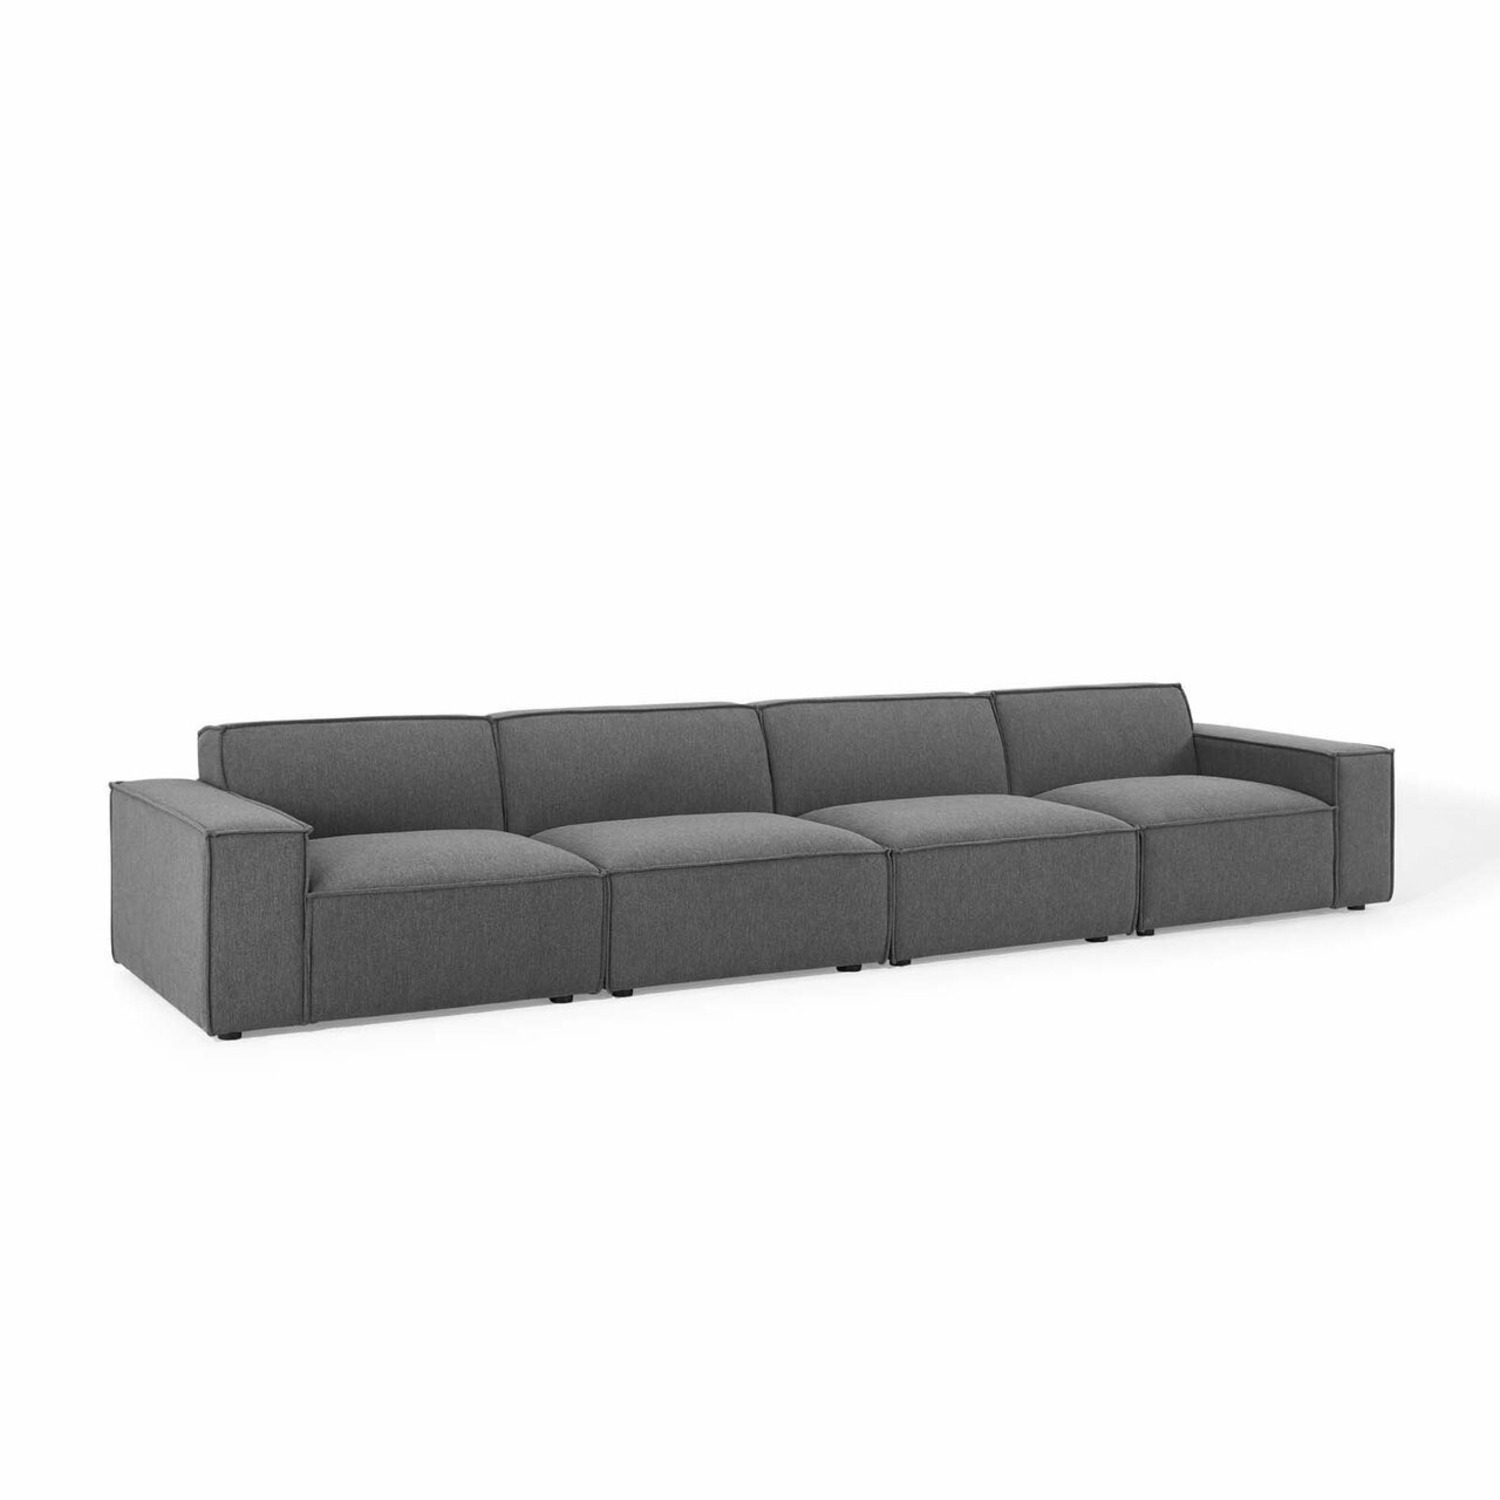 4-Piece Sectional Sofa In Charcoal Upholstery - image-0